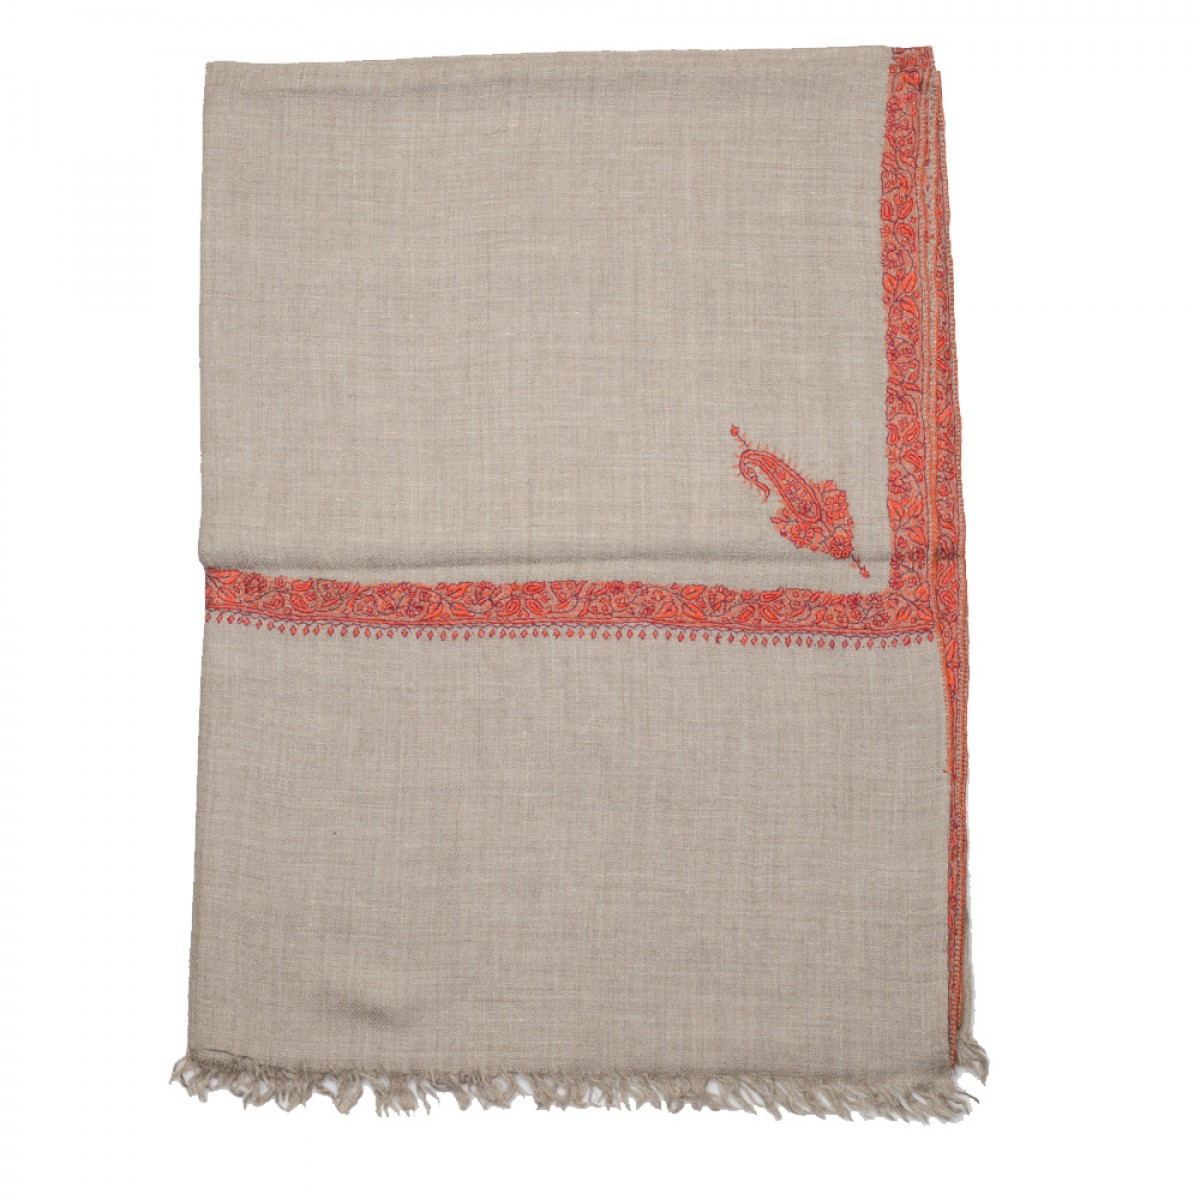 Embroidered Pashmina stole - Natural & Red